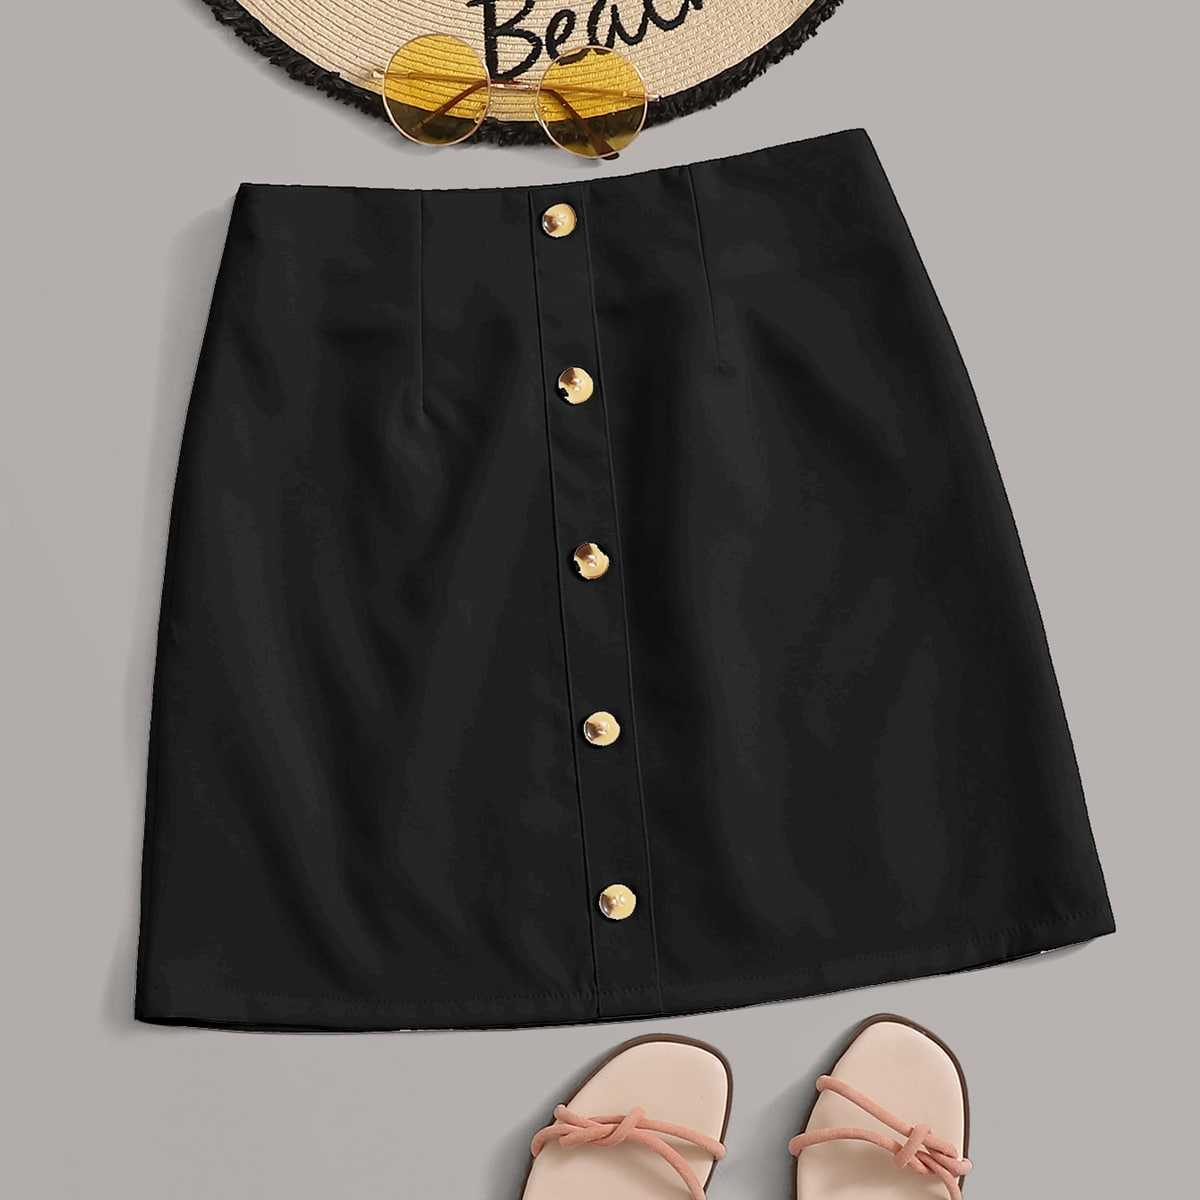 Solid Button Front A-line Skirt in Black by ROMWE on GOOFASH